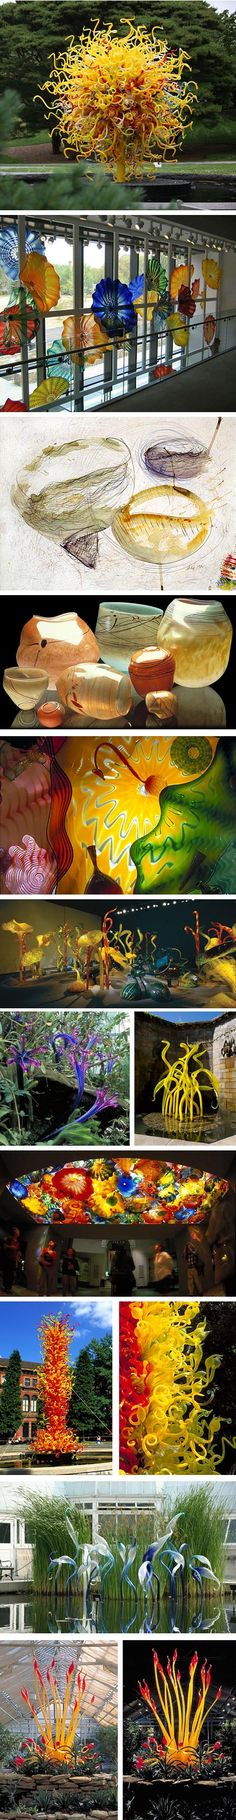 Dale Chihuly glass sculptures http://www.linesandcolors.com/2011/07/10/dale-chihuly/